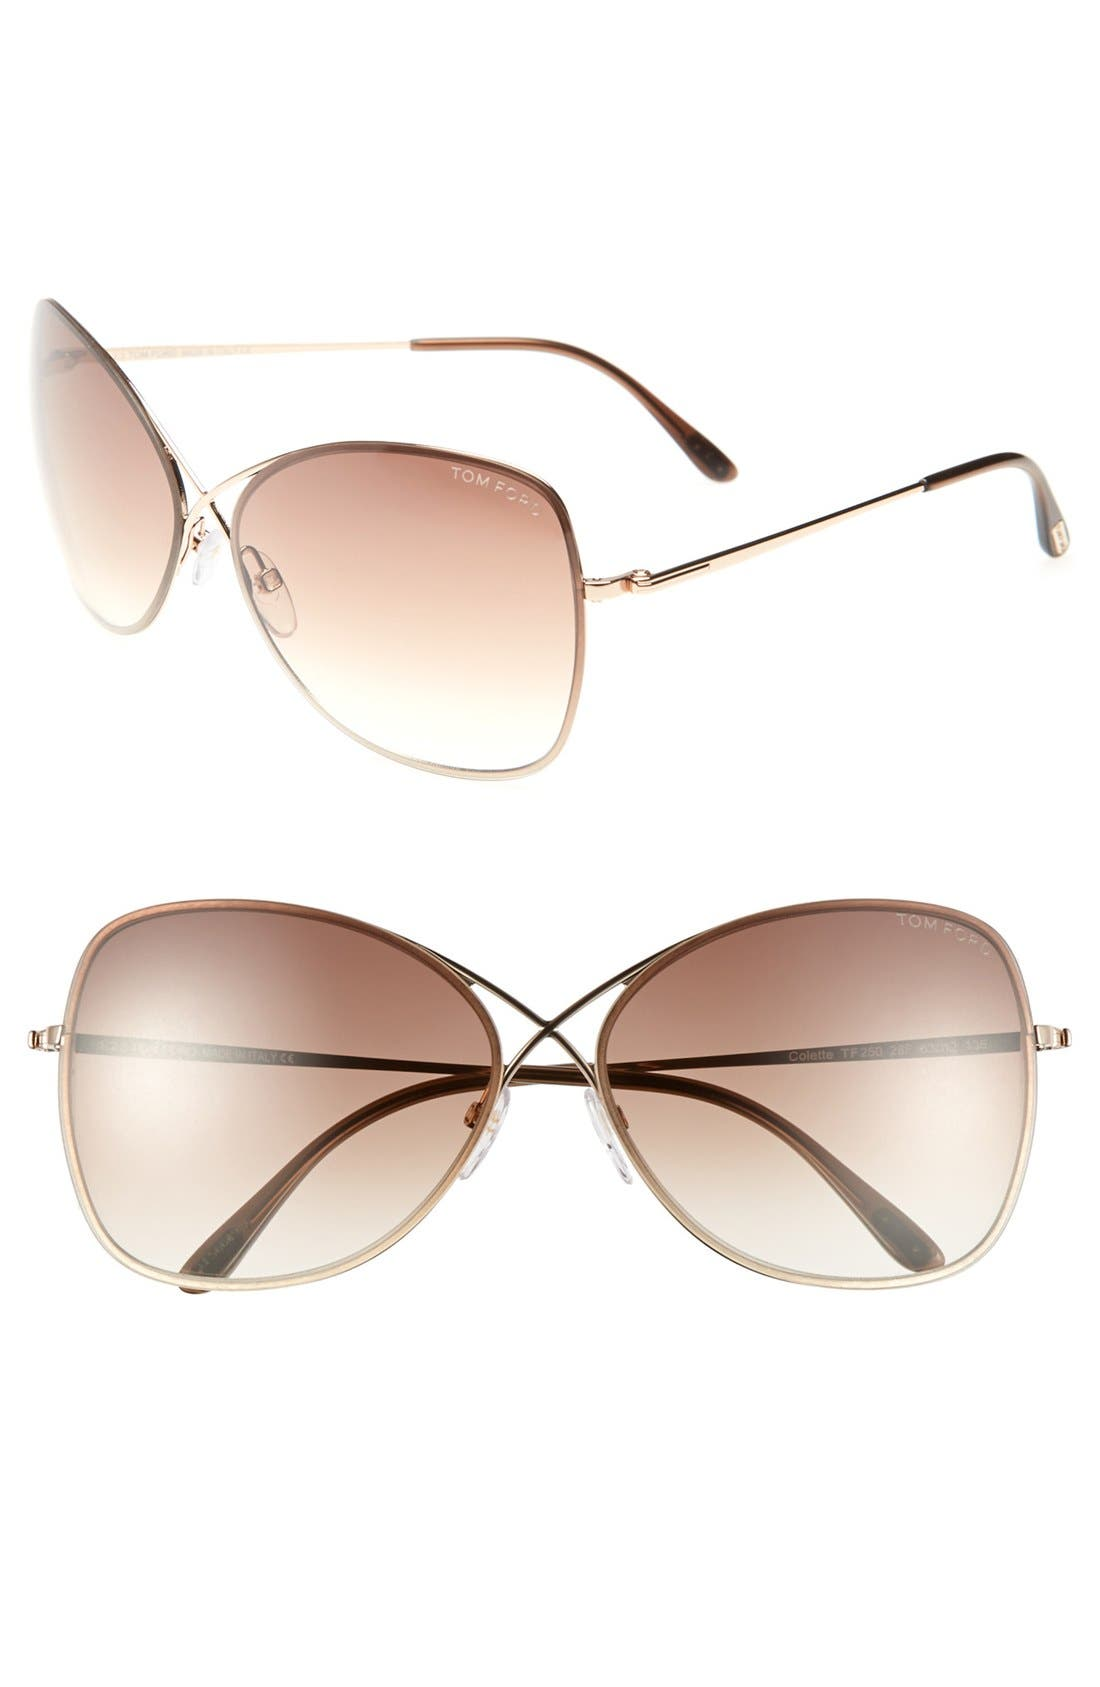 Main Image - Tom Ford 'Colette' 63mm Oversize Sunglasses